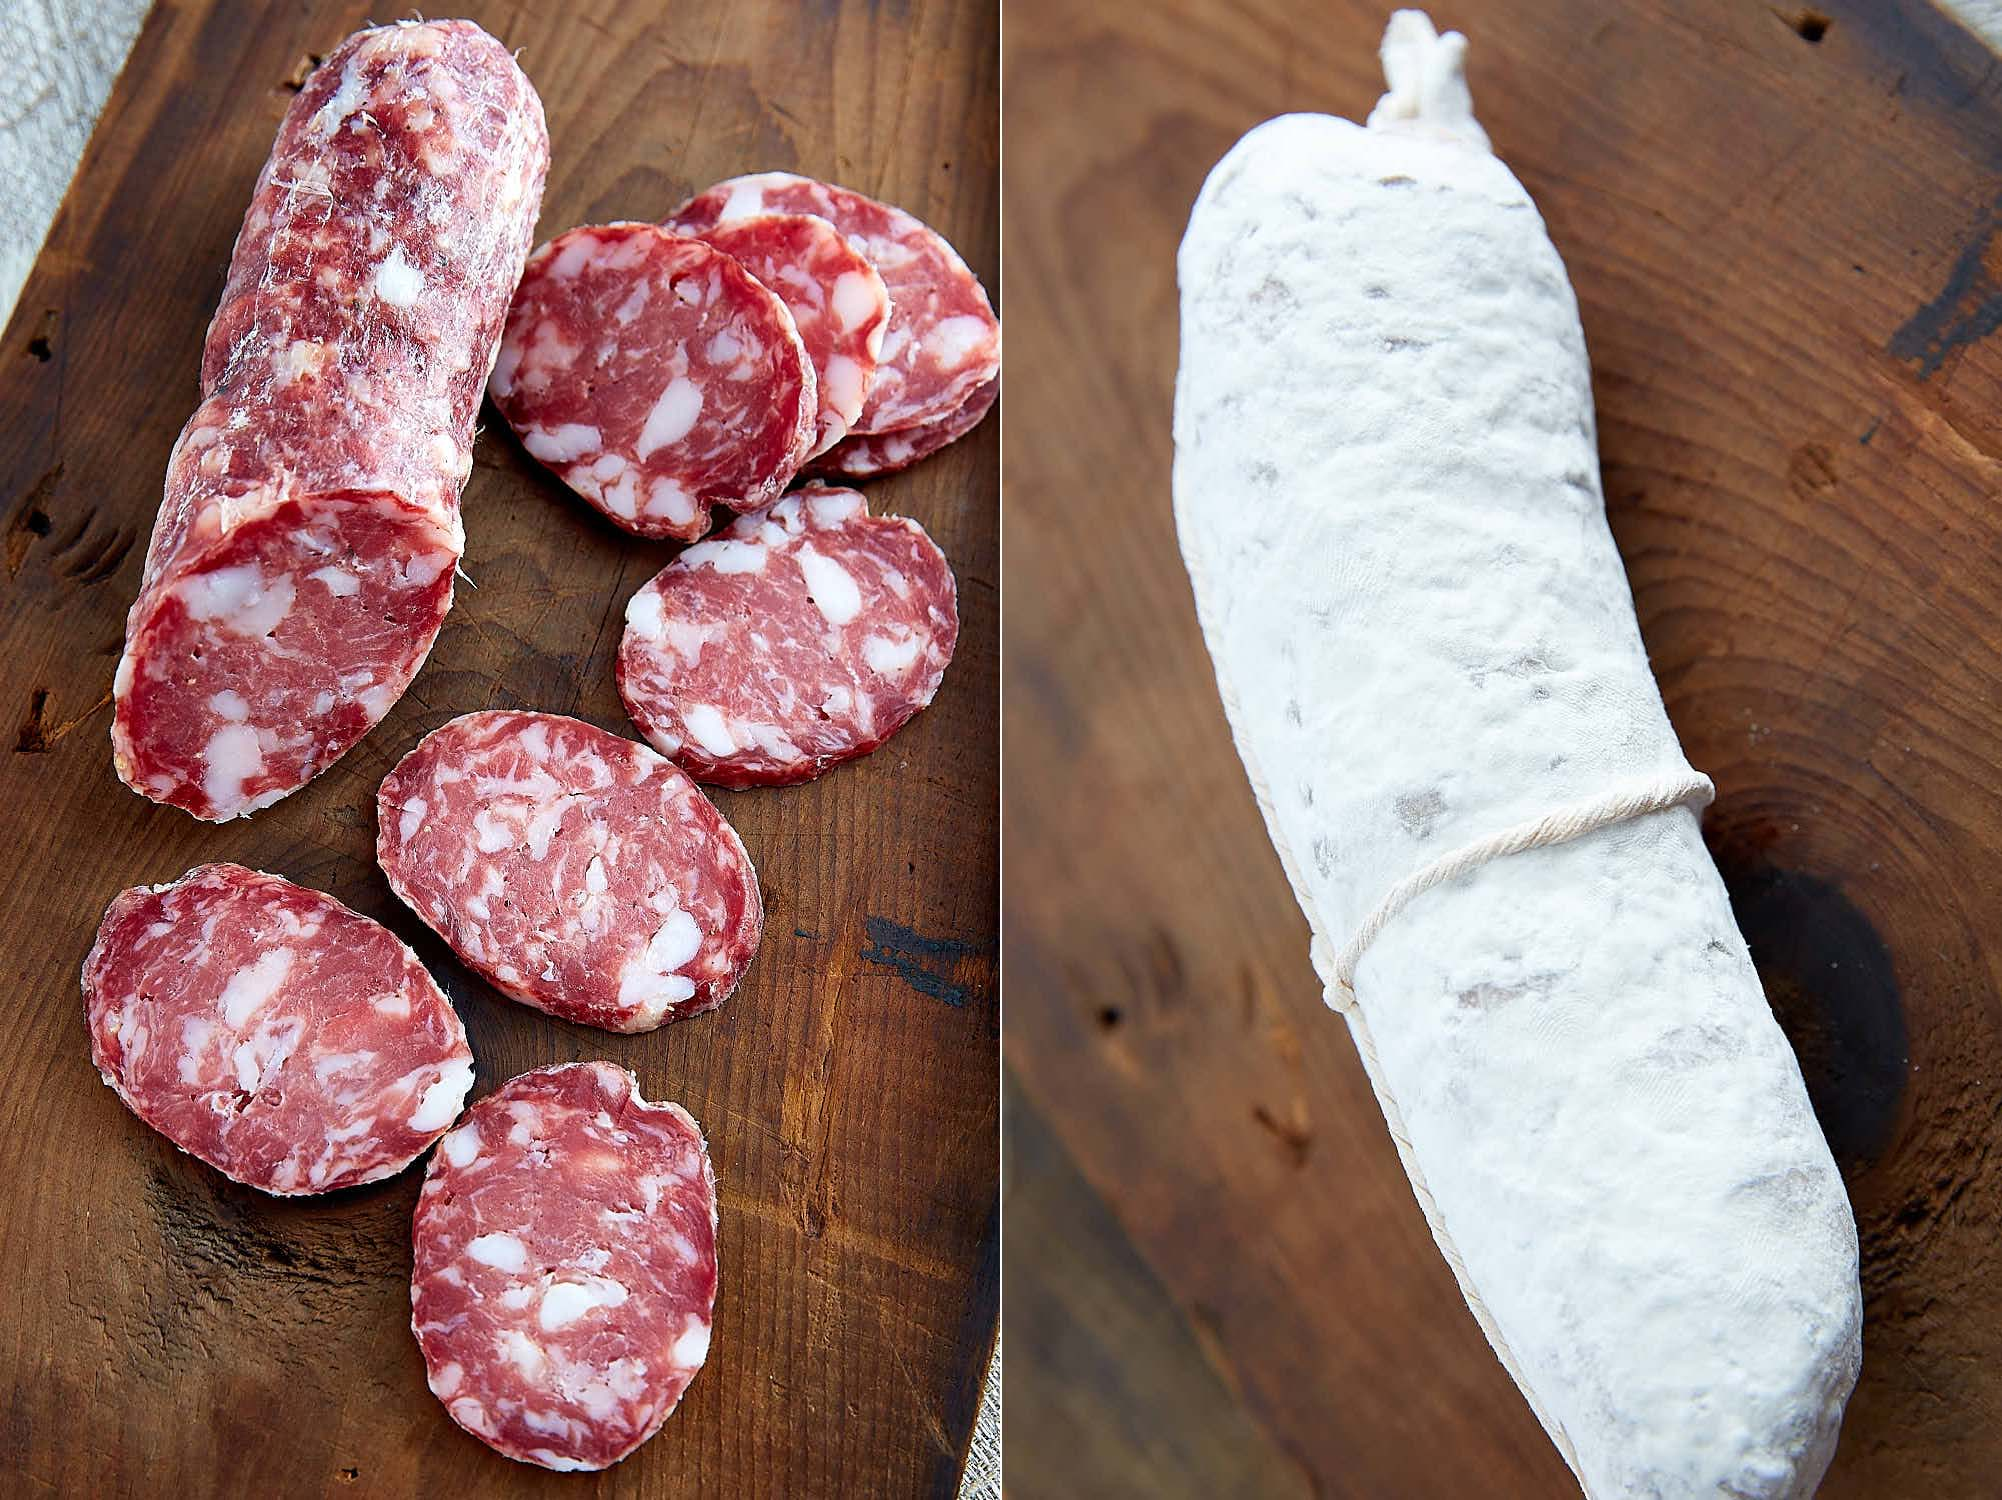 Salami in Home Meat Curing Chamber